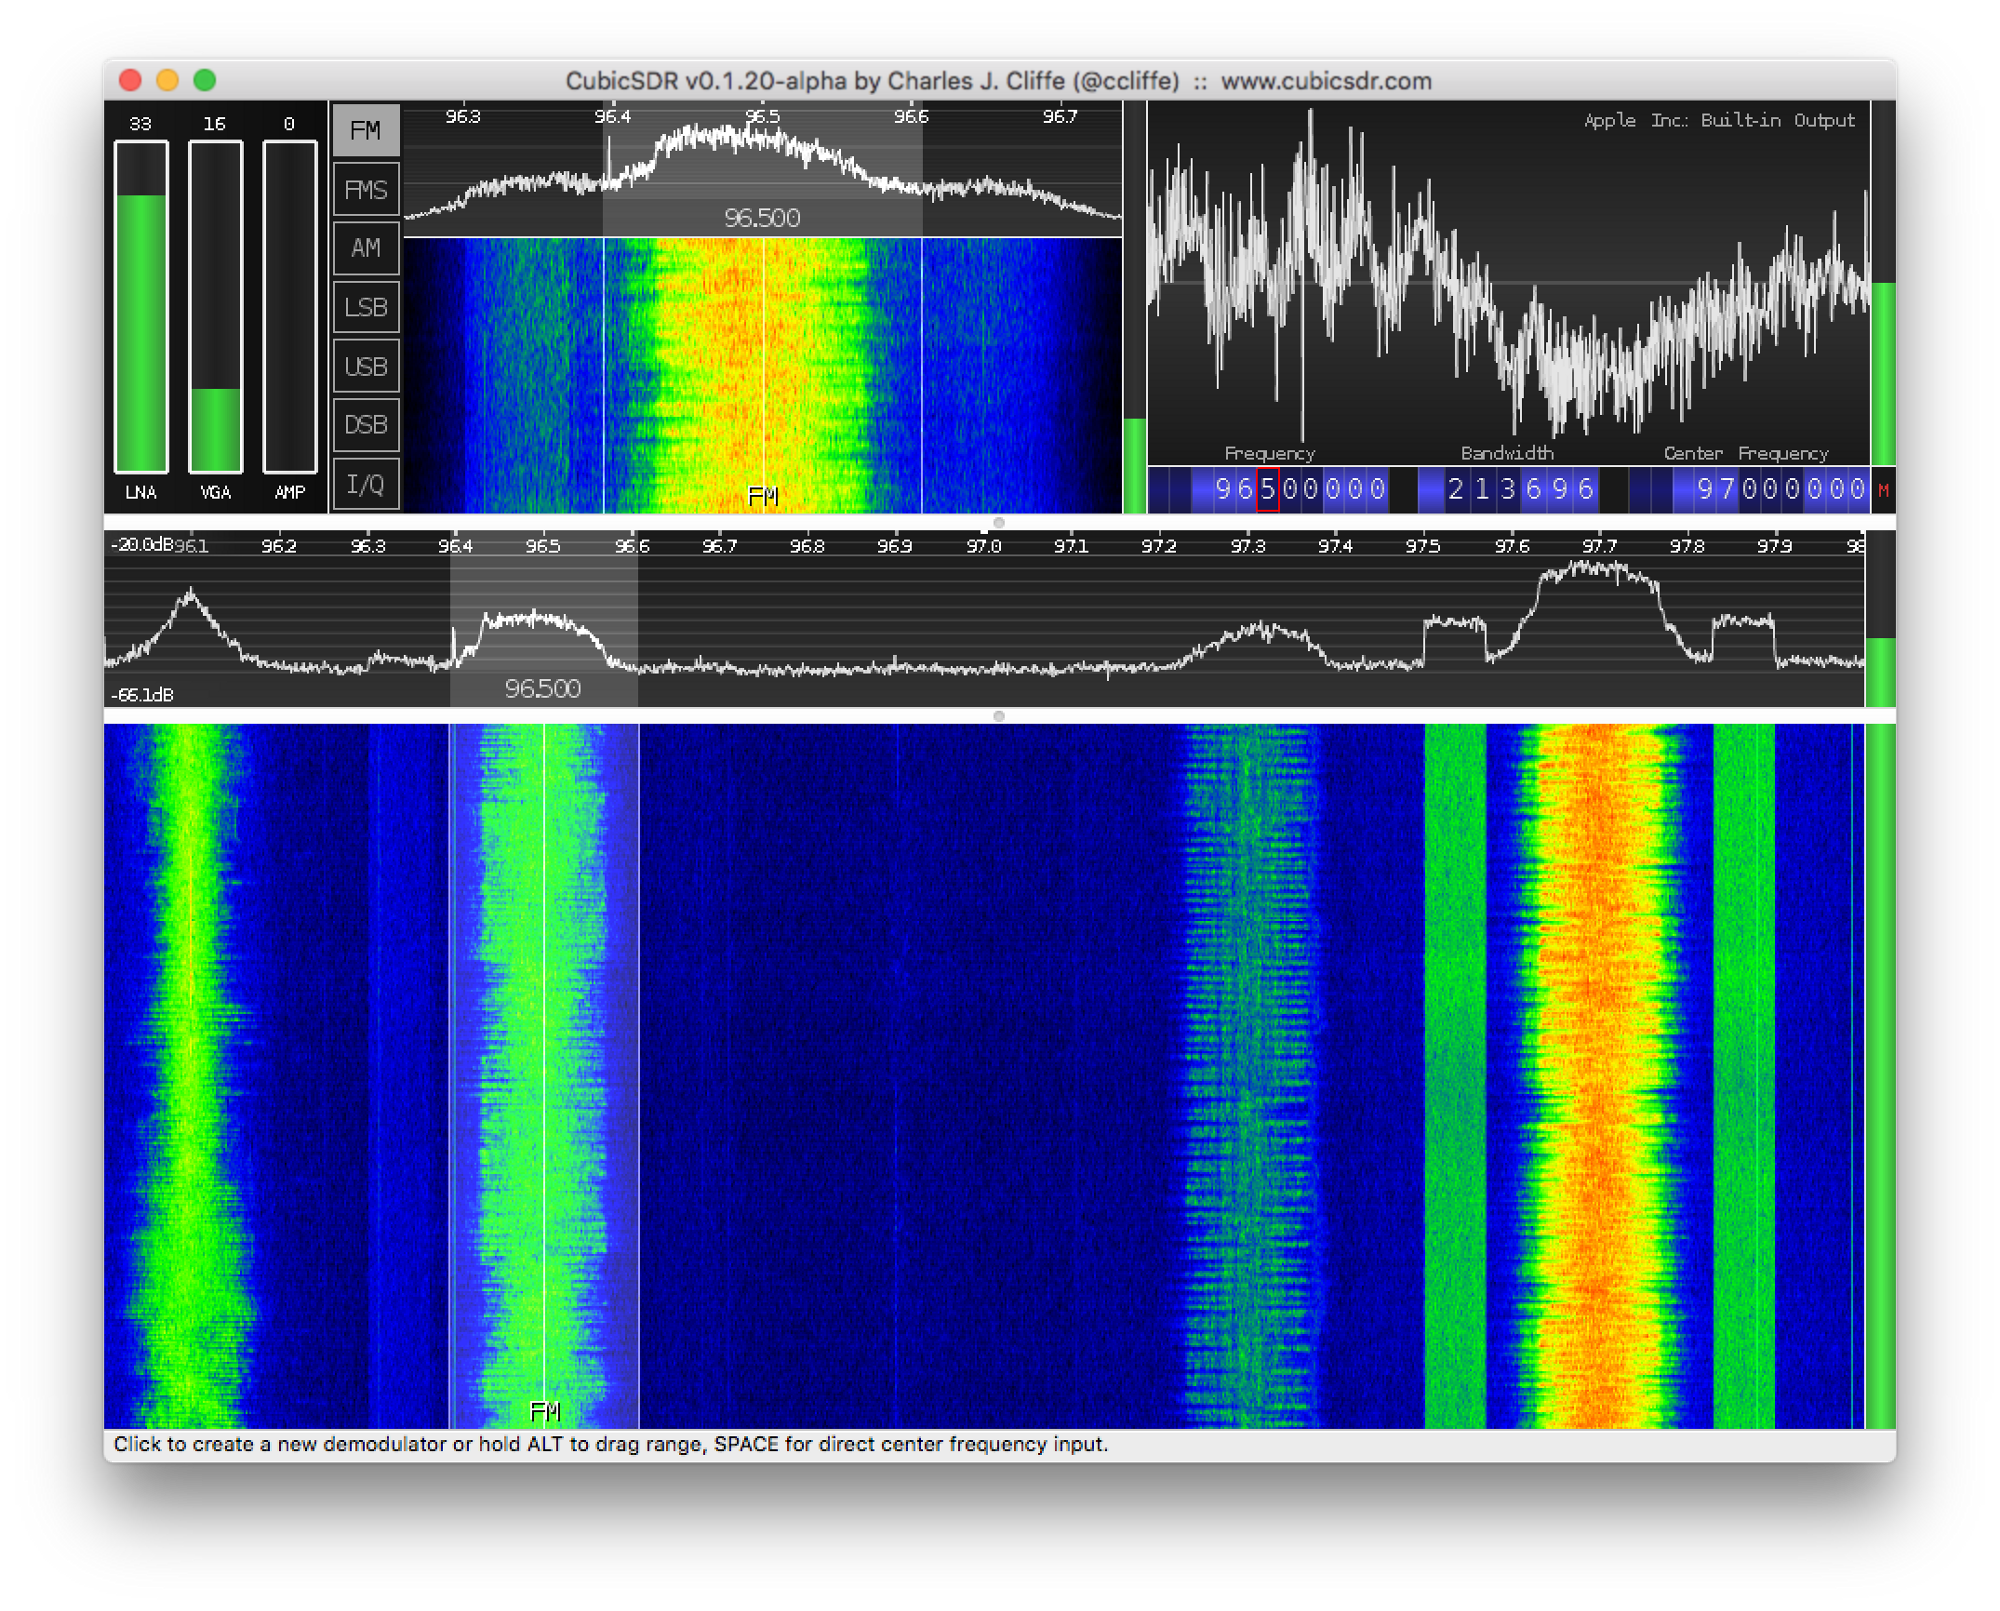 Finding interesting signals: heat maps and callsigns